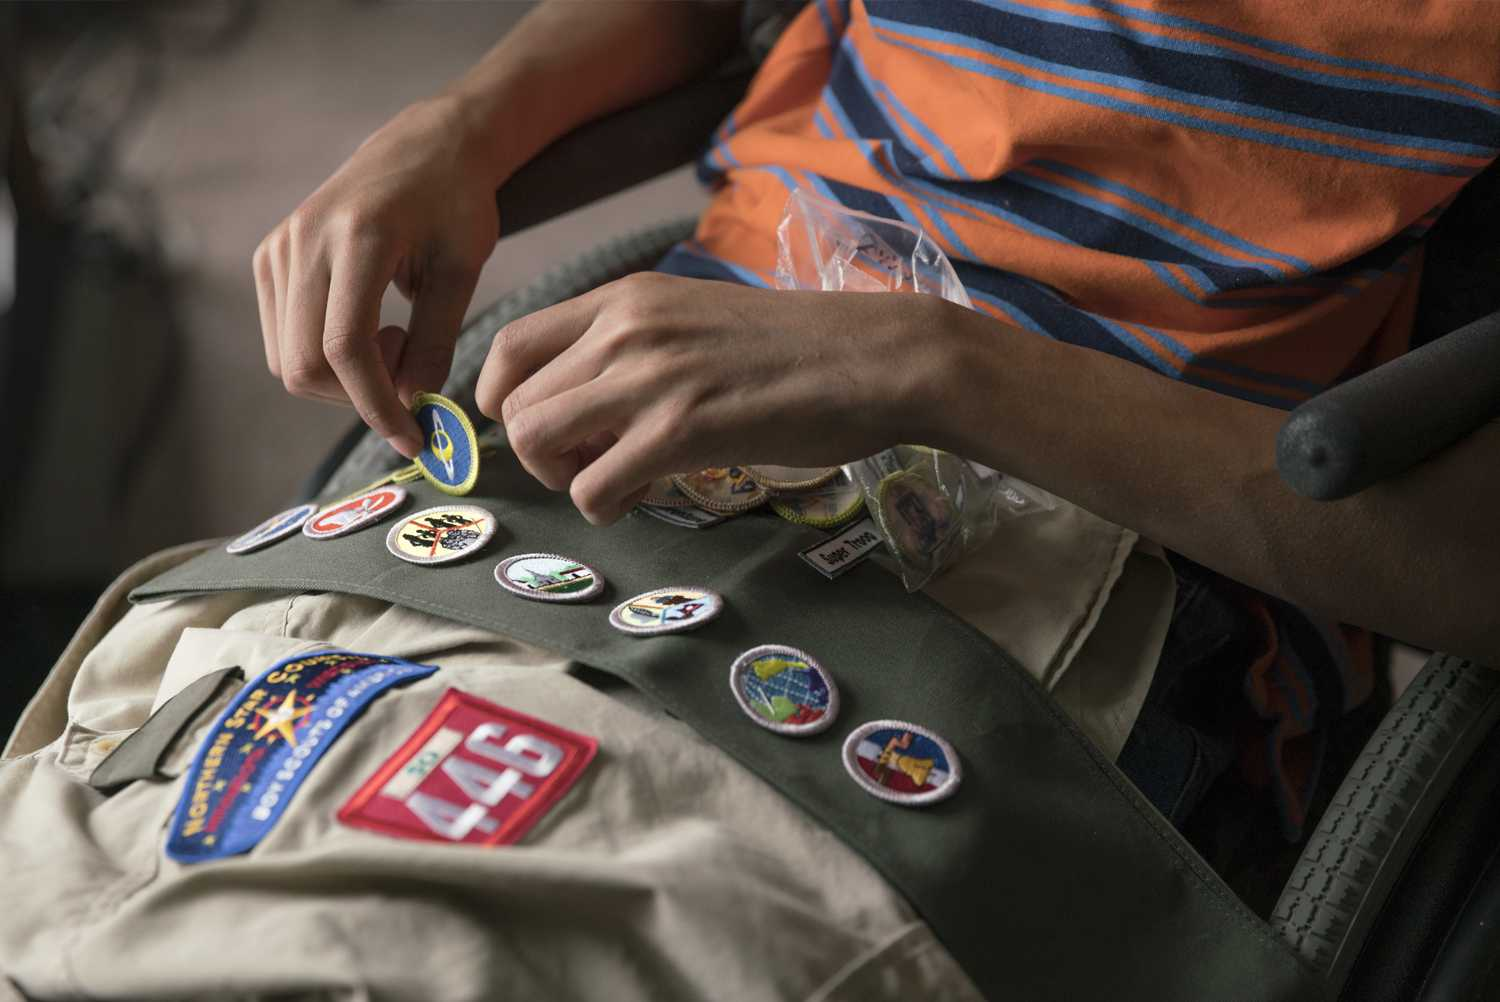 Elijah shows off his Boy Scout badges.